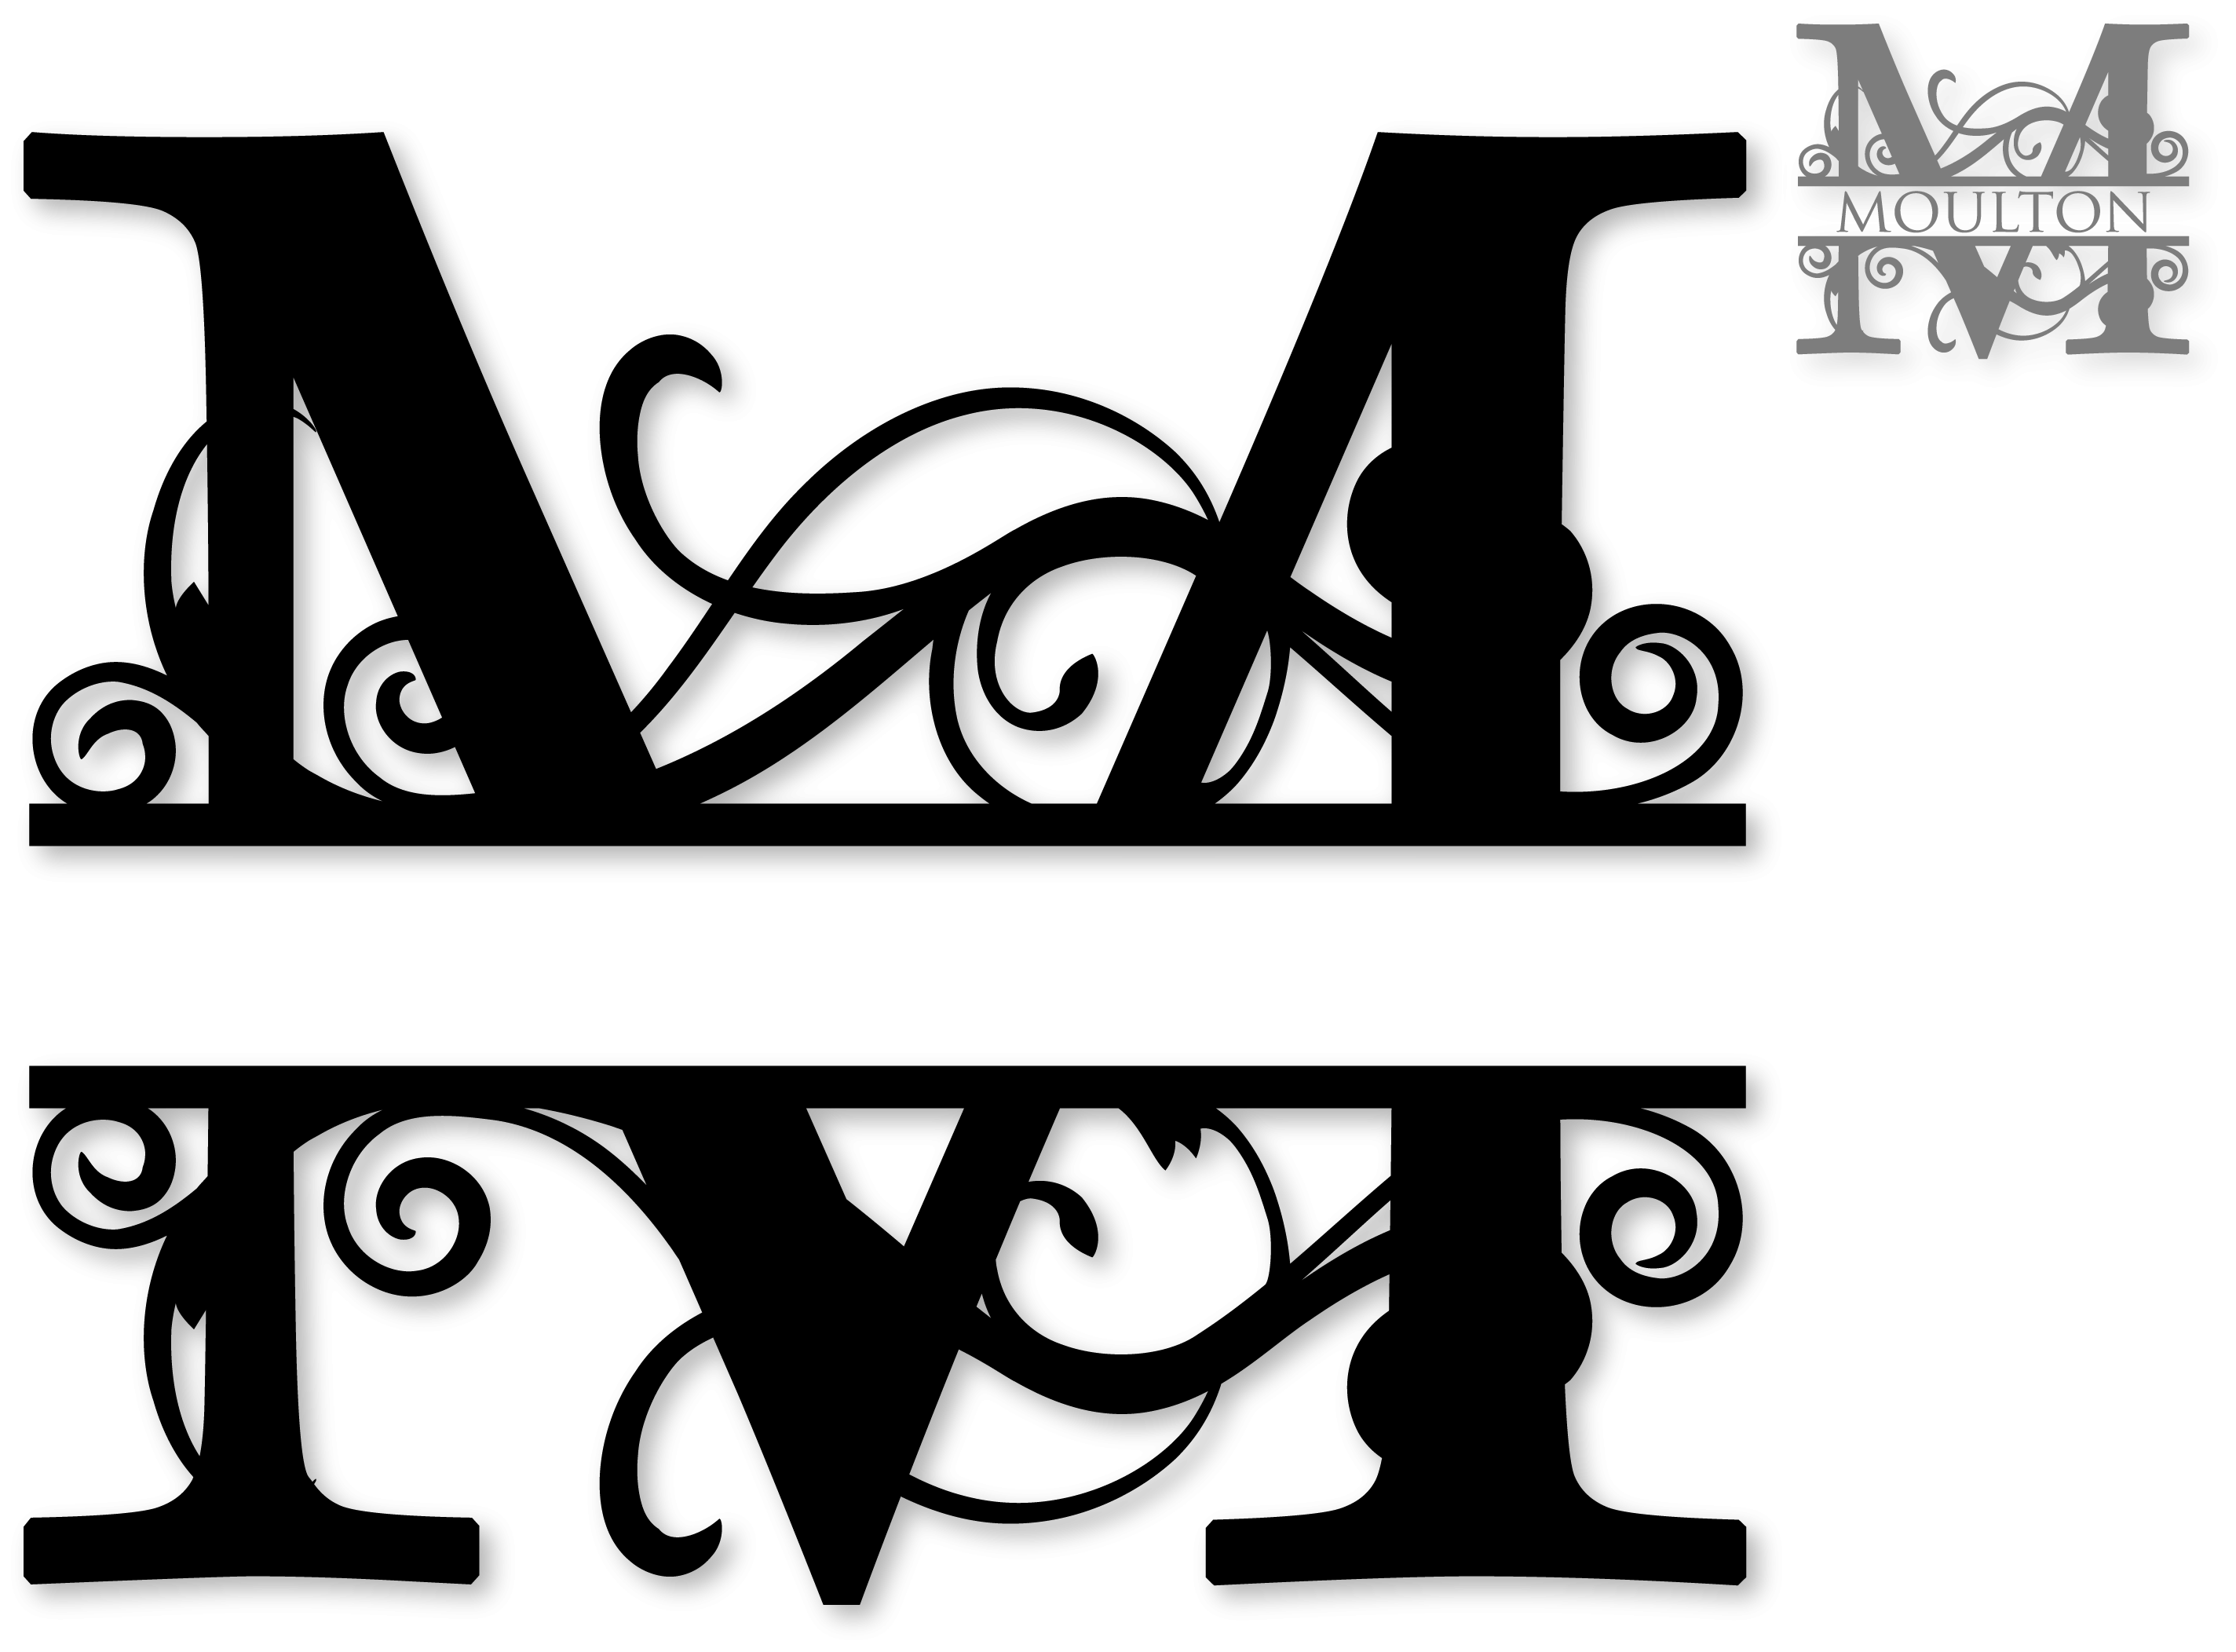 Fancy m png. Collection of letter